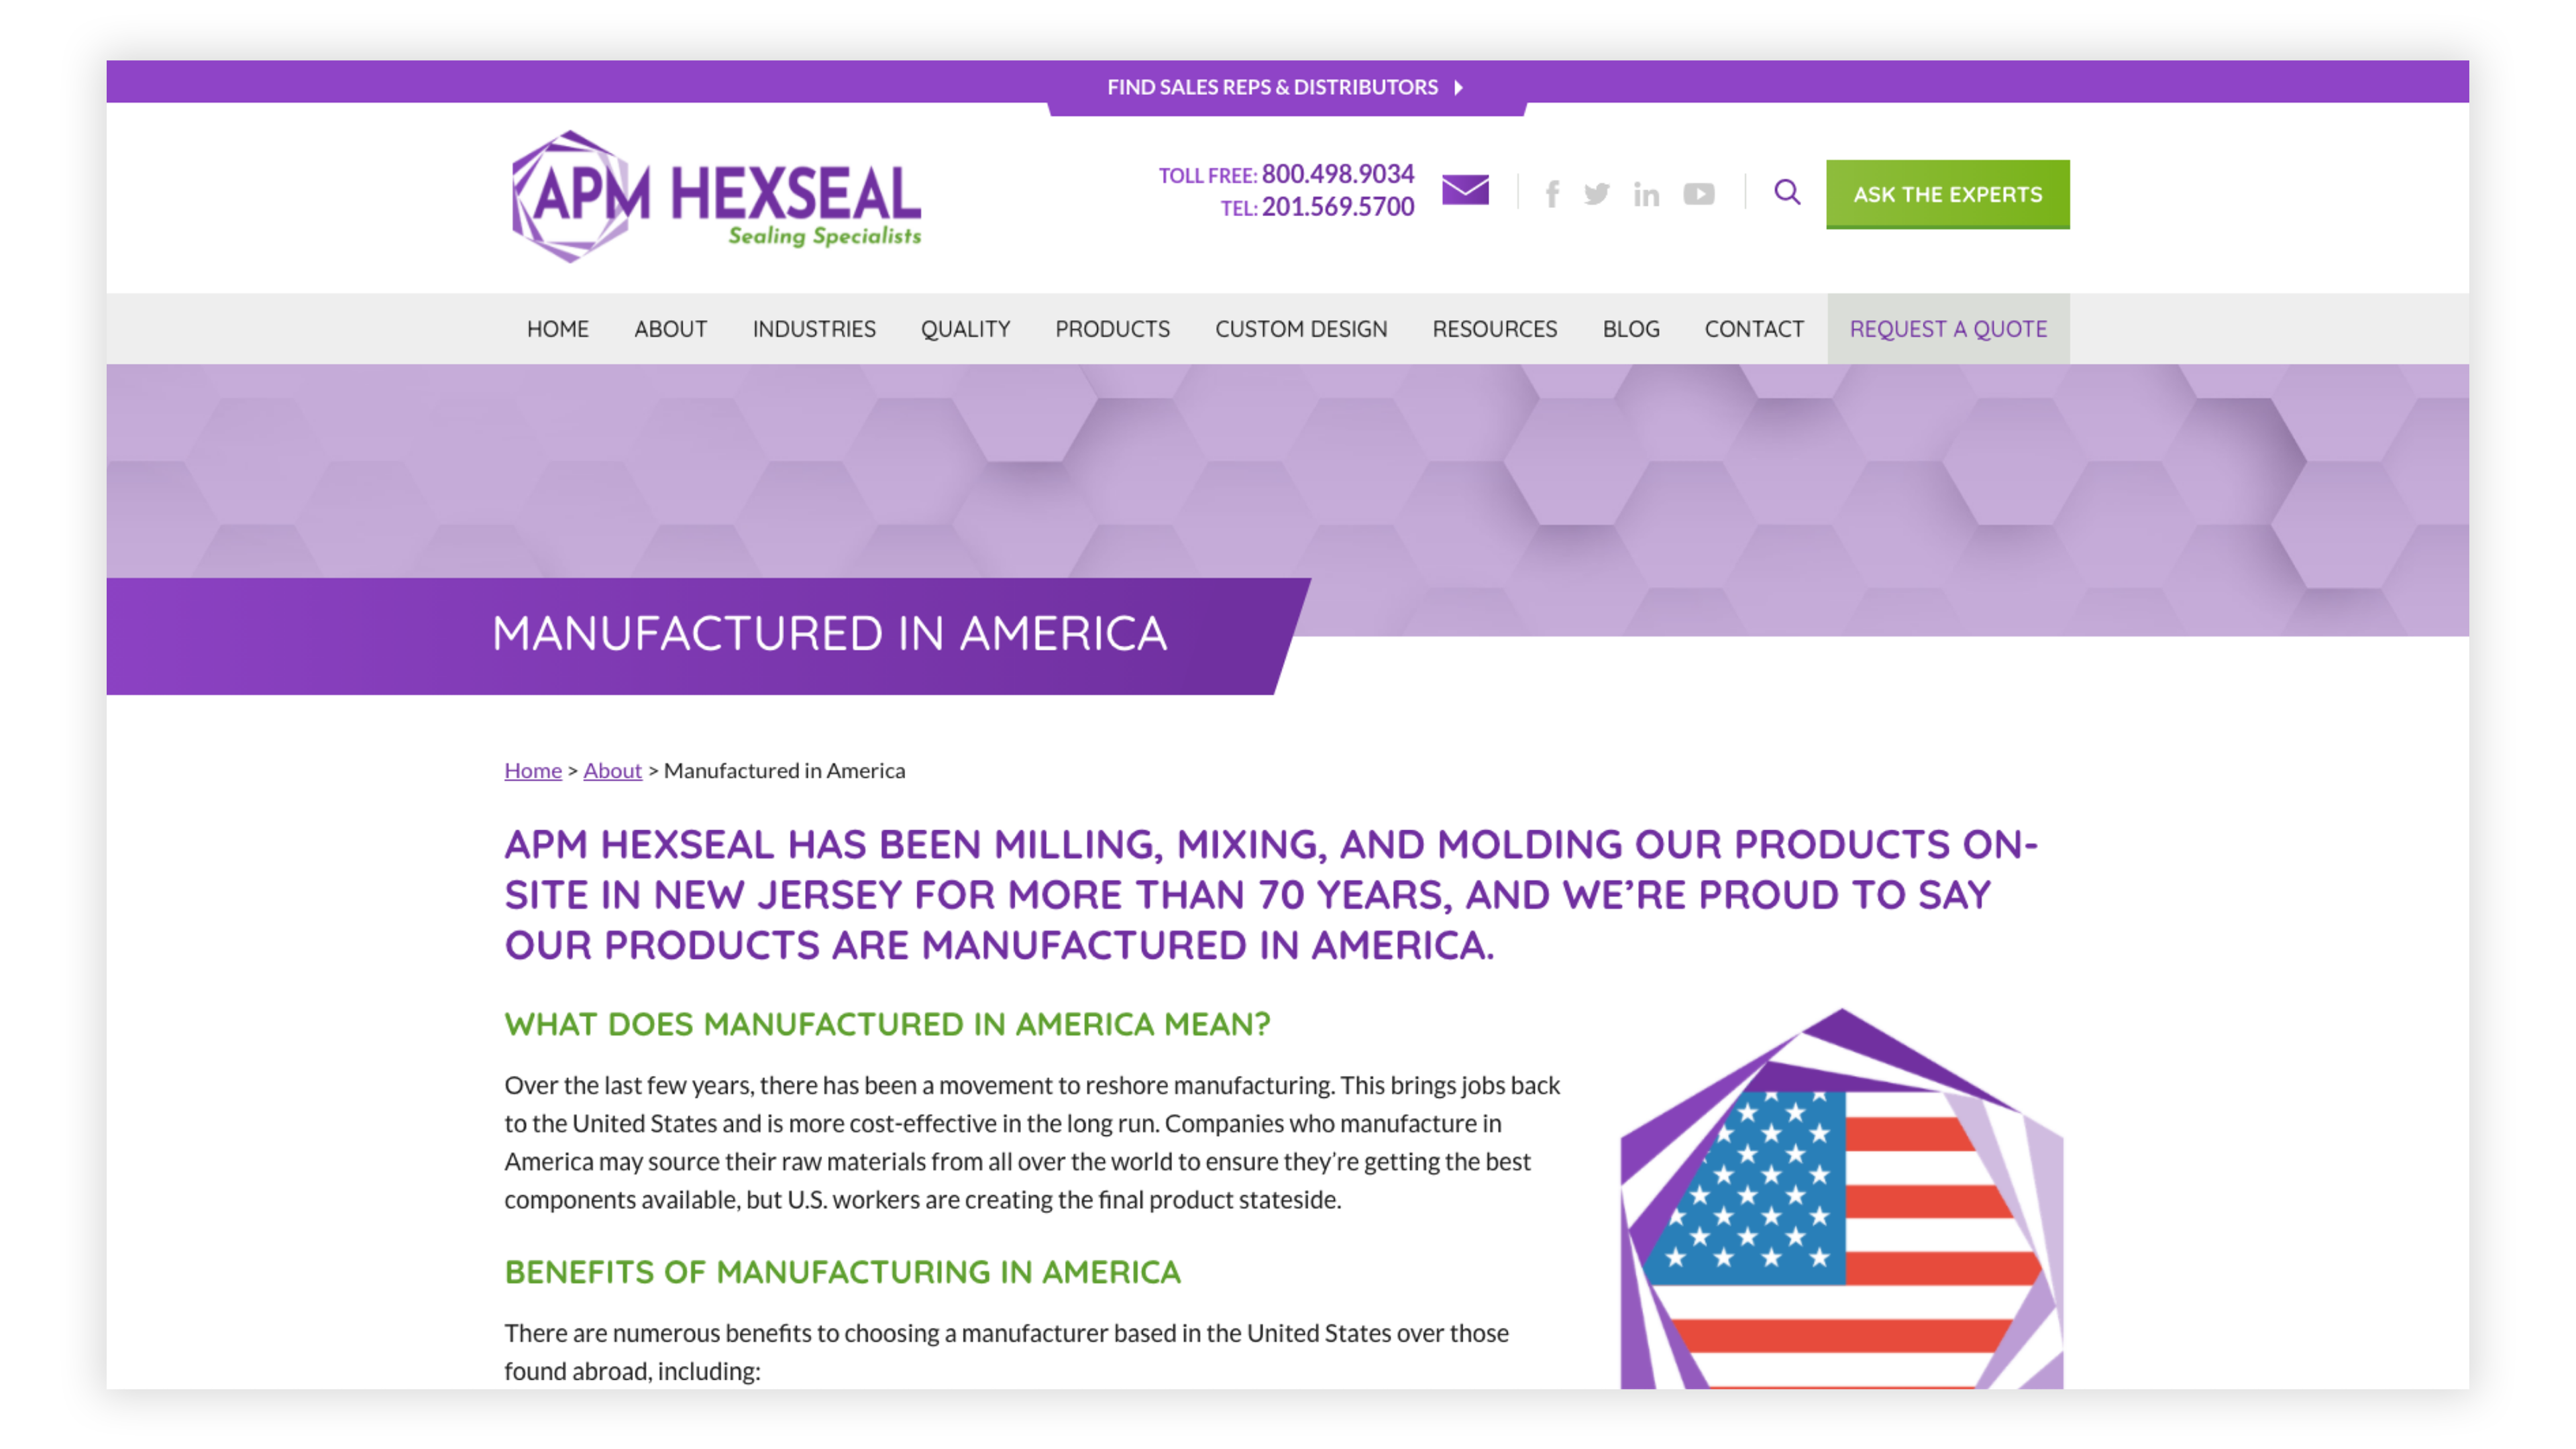 APM Hexseal About Us page